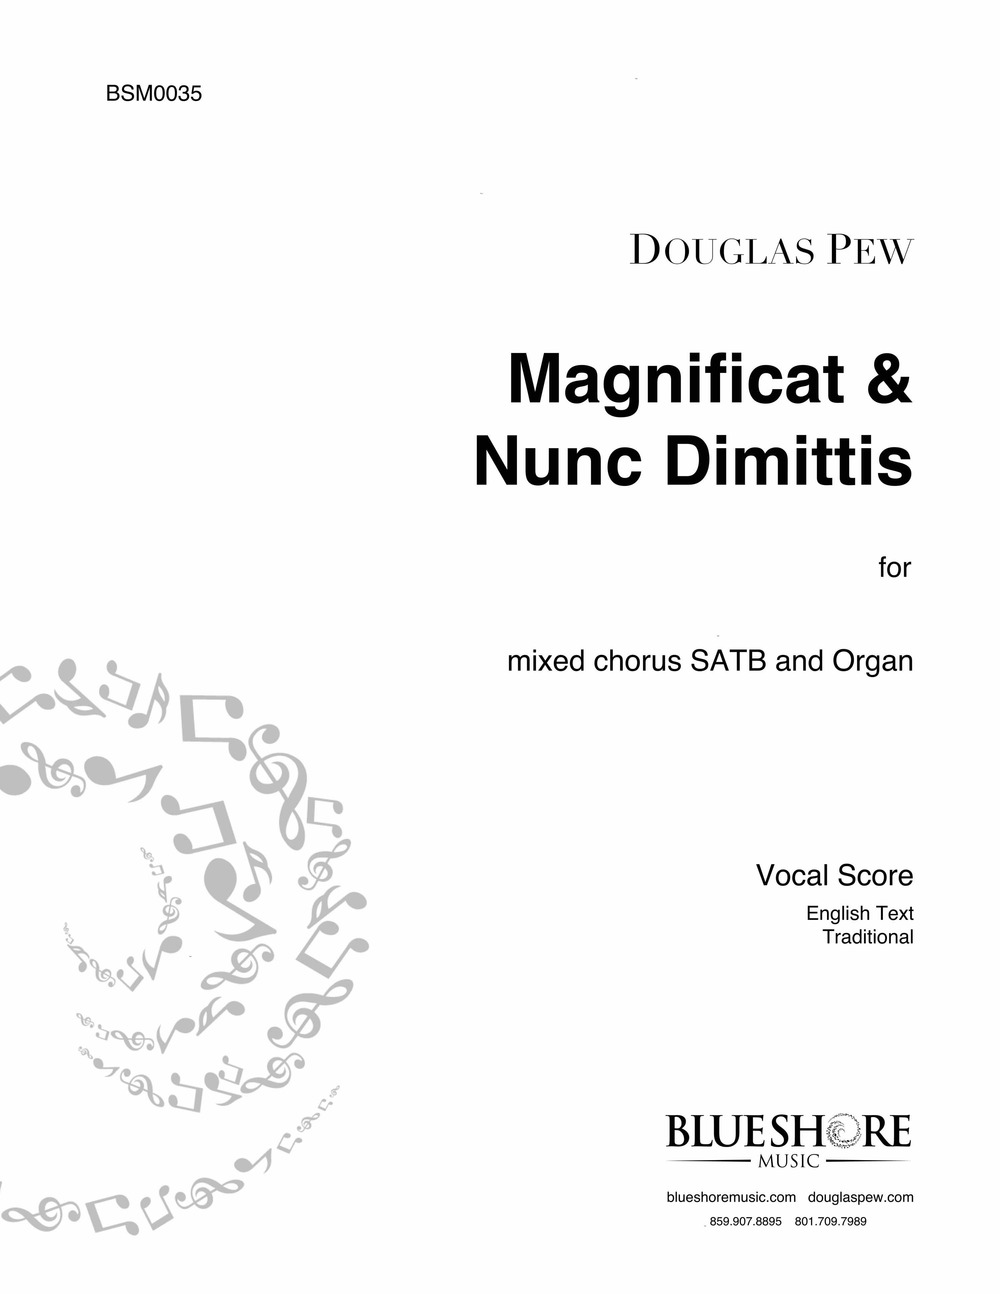 Pew_BSM0035_MagnificatNuncDimittis_cover_smaller.jpg